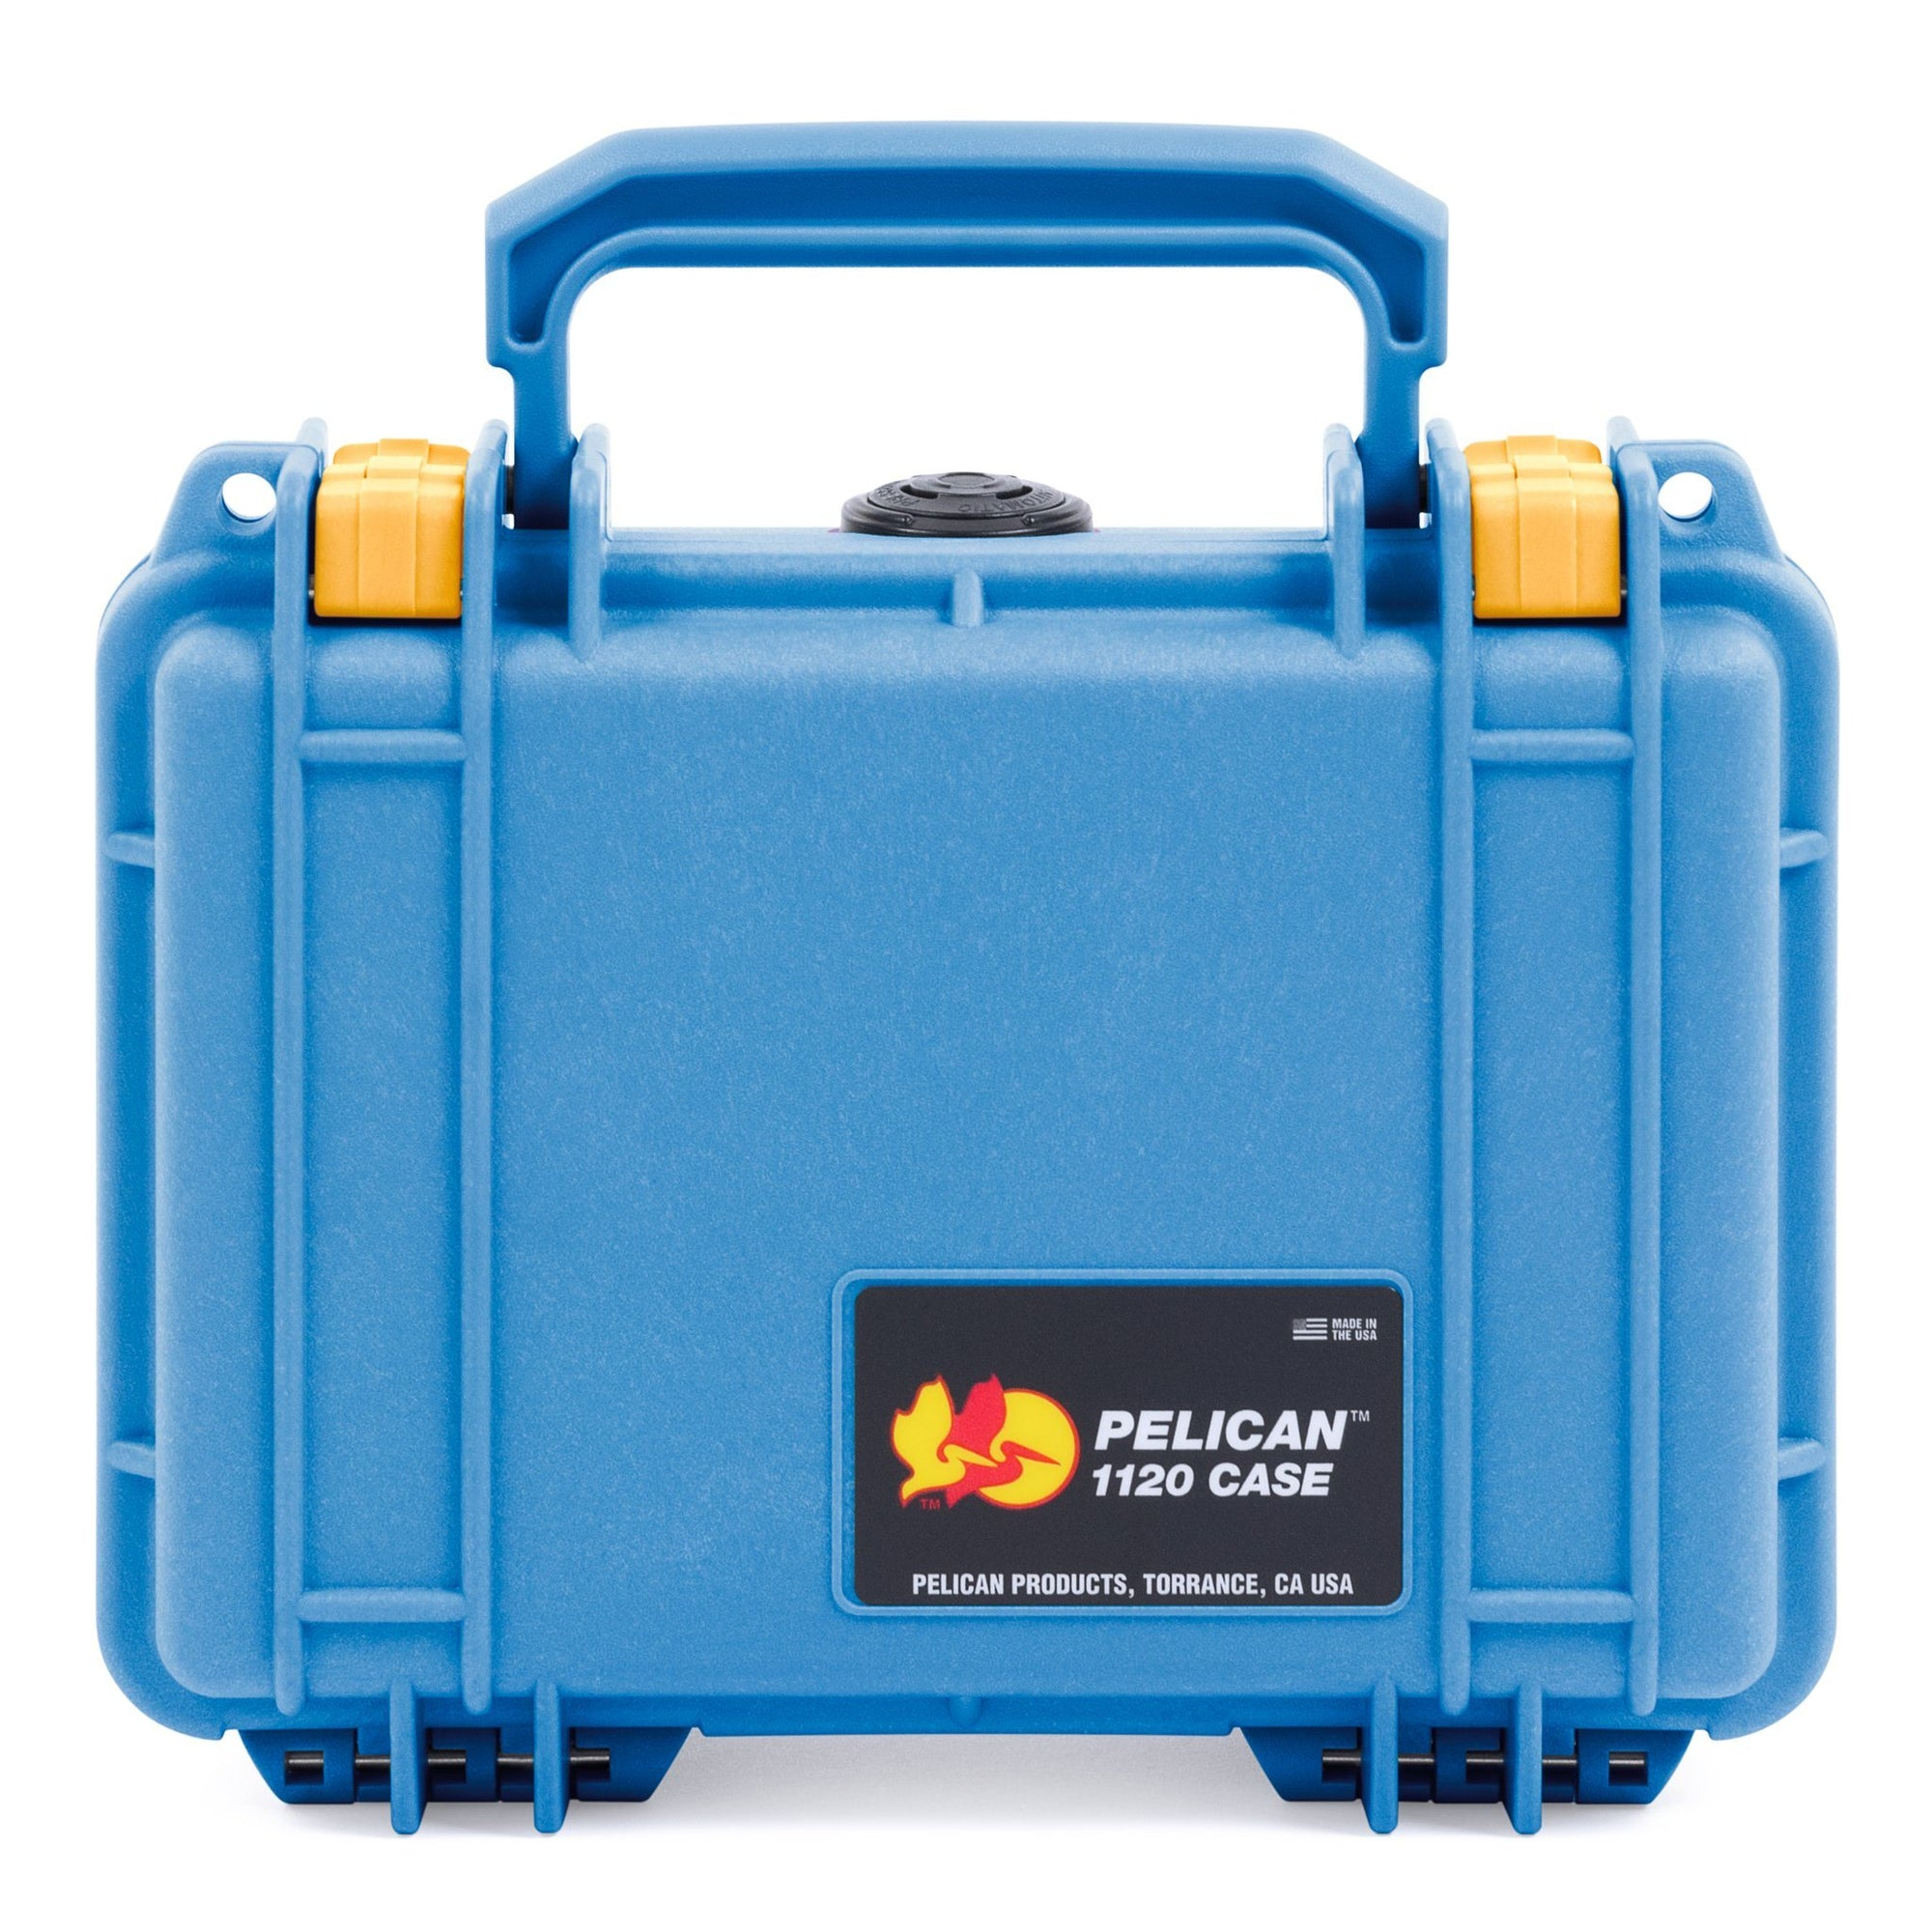 Pelican 1120 Case, Blue with Yellow Latches - Pelican Color Case